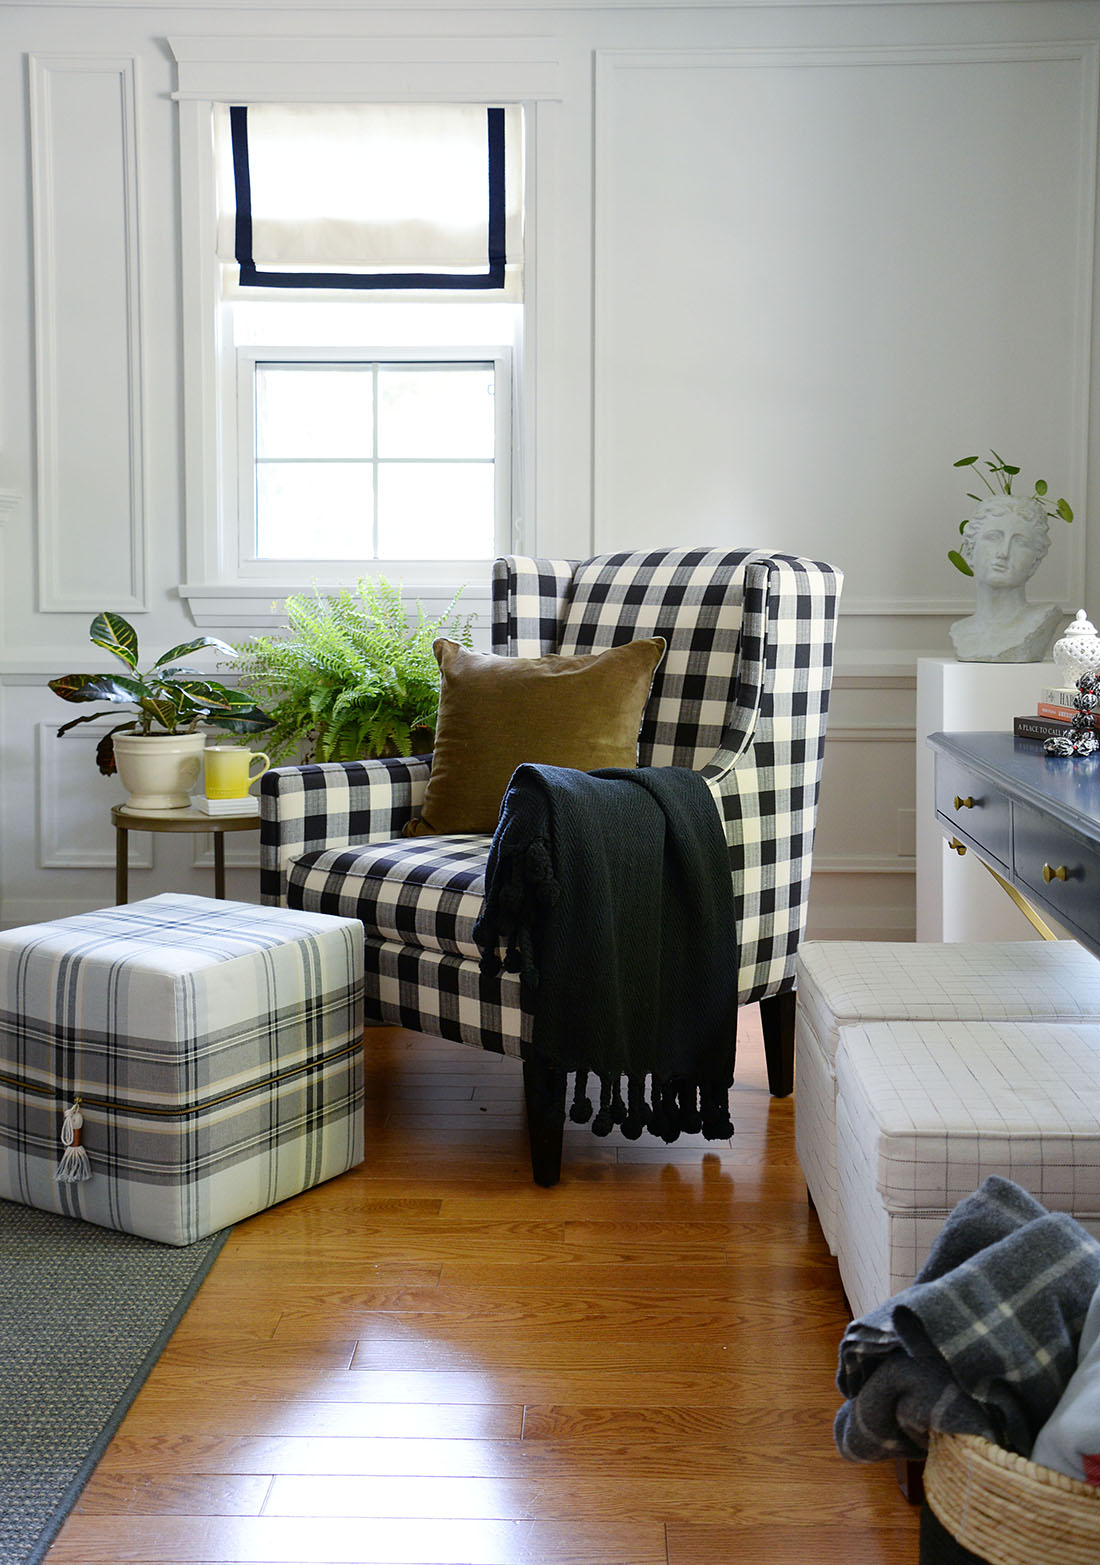 buffalo plaid chair, barrymore armchair, plaid ottoman, tonic living cube ottoman, blue desk, fern plant, Arthur velvet pillow, pom pom throw